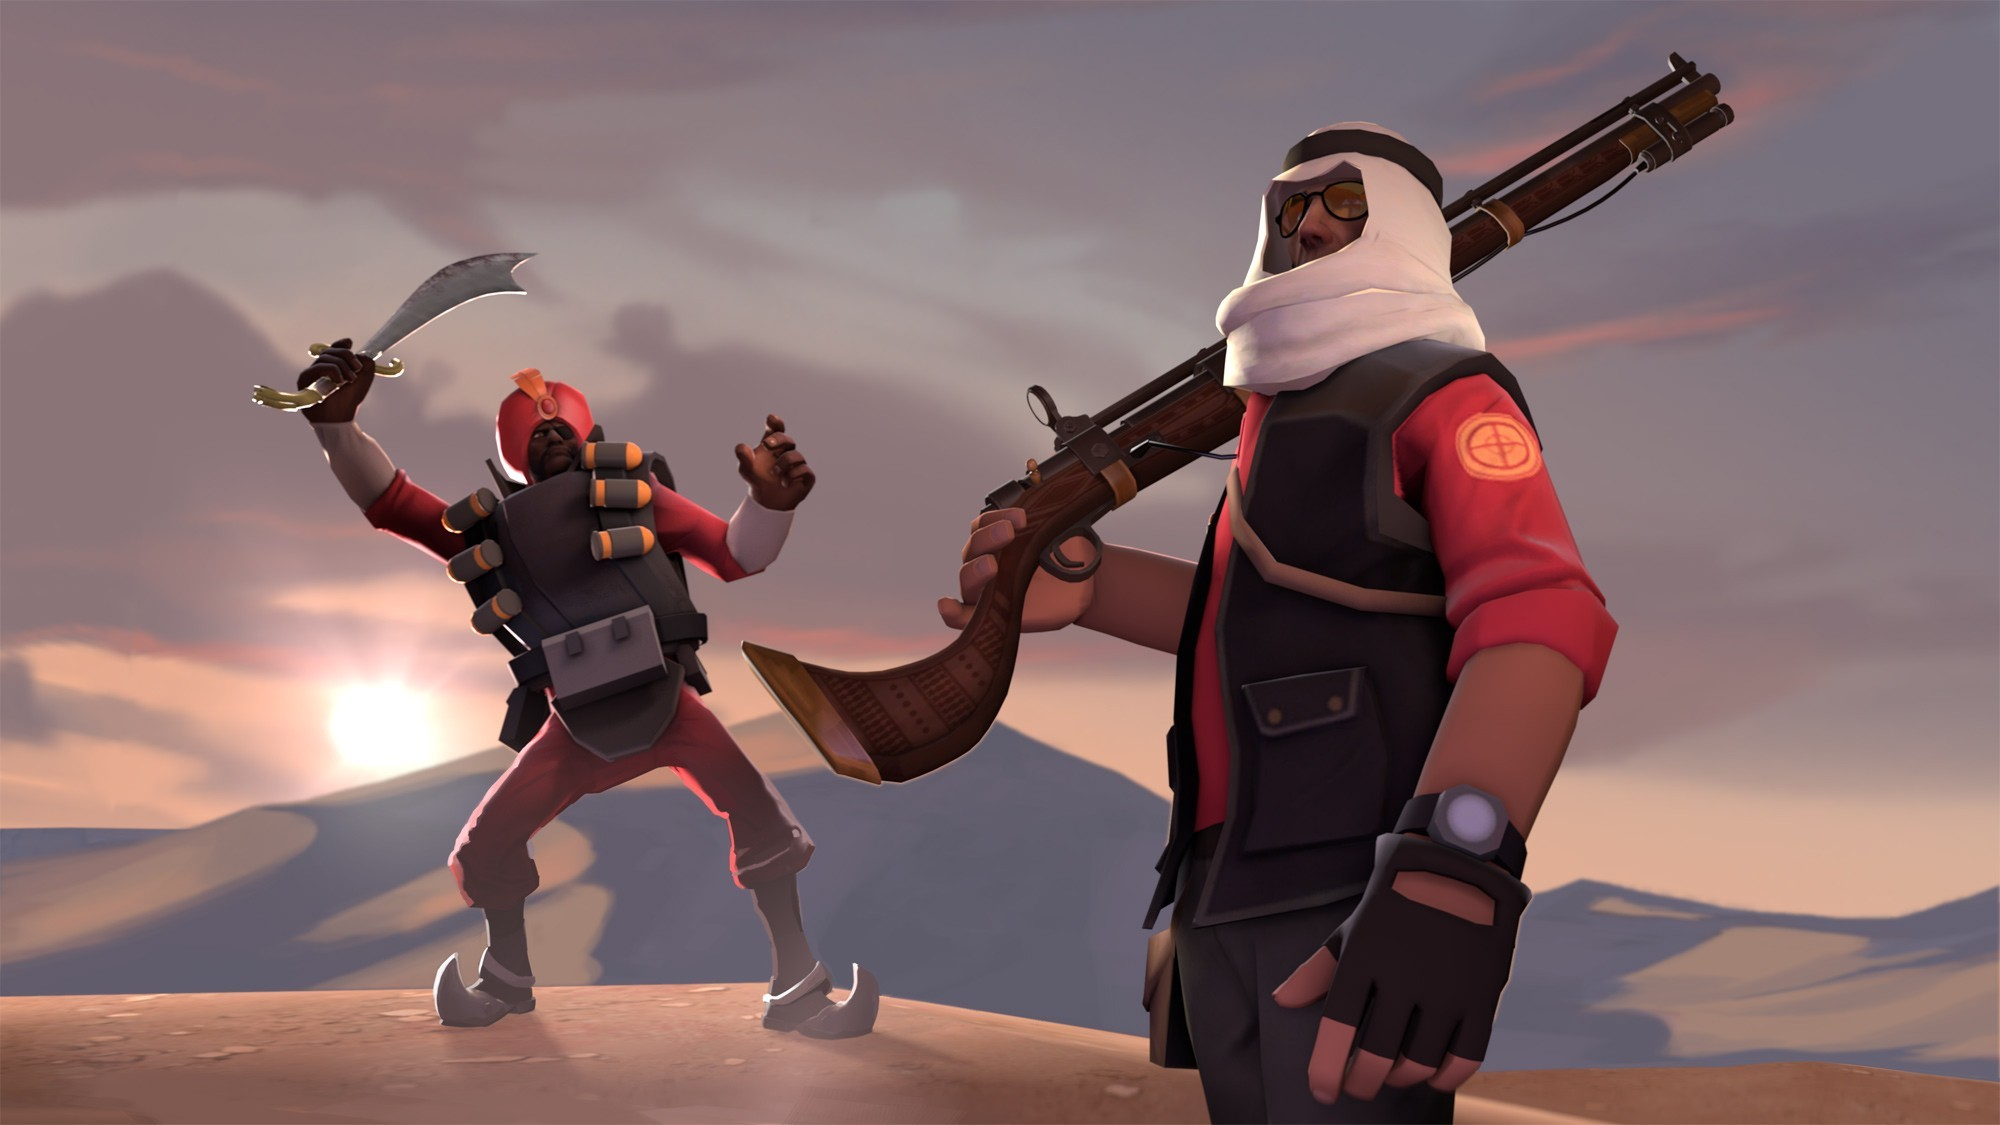 skylines Demoman TF2 team HD Wallpaper